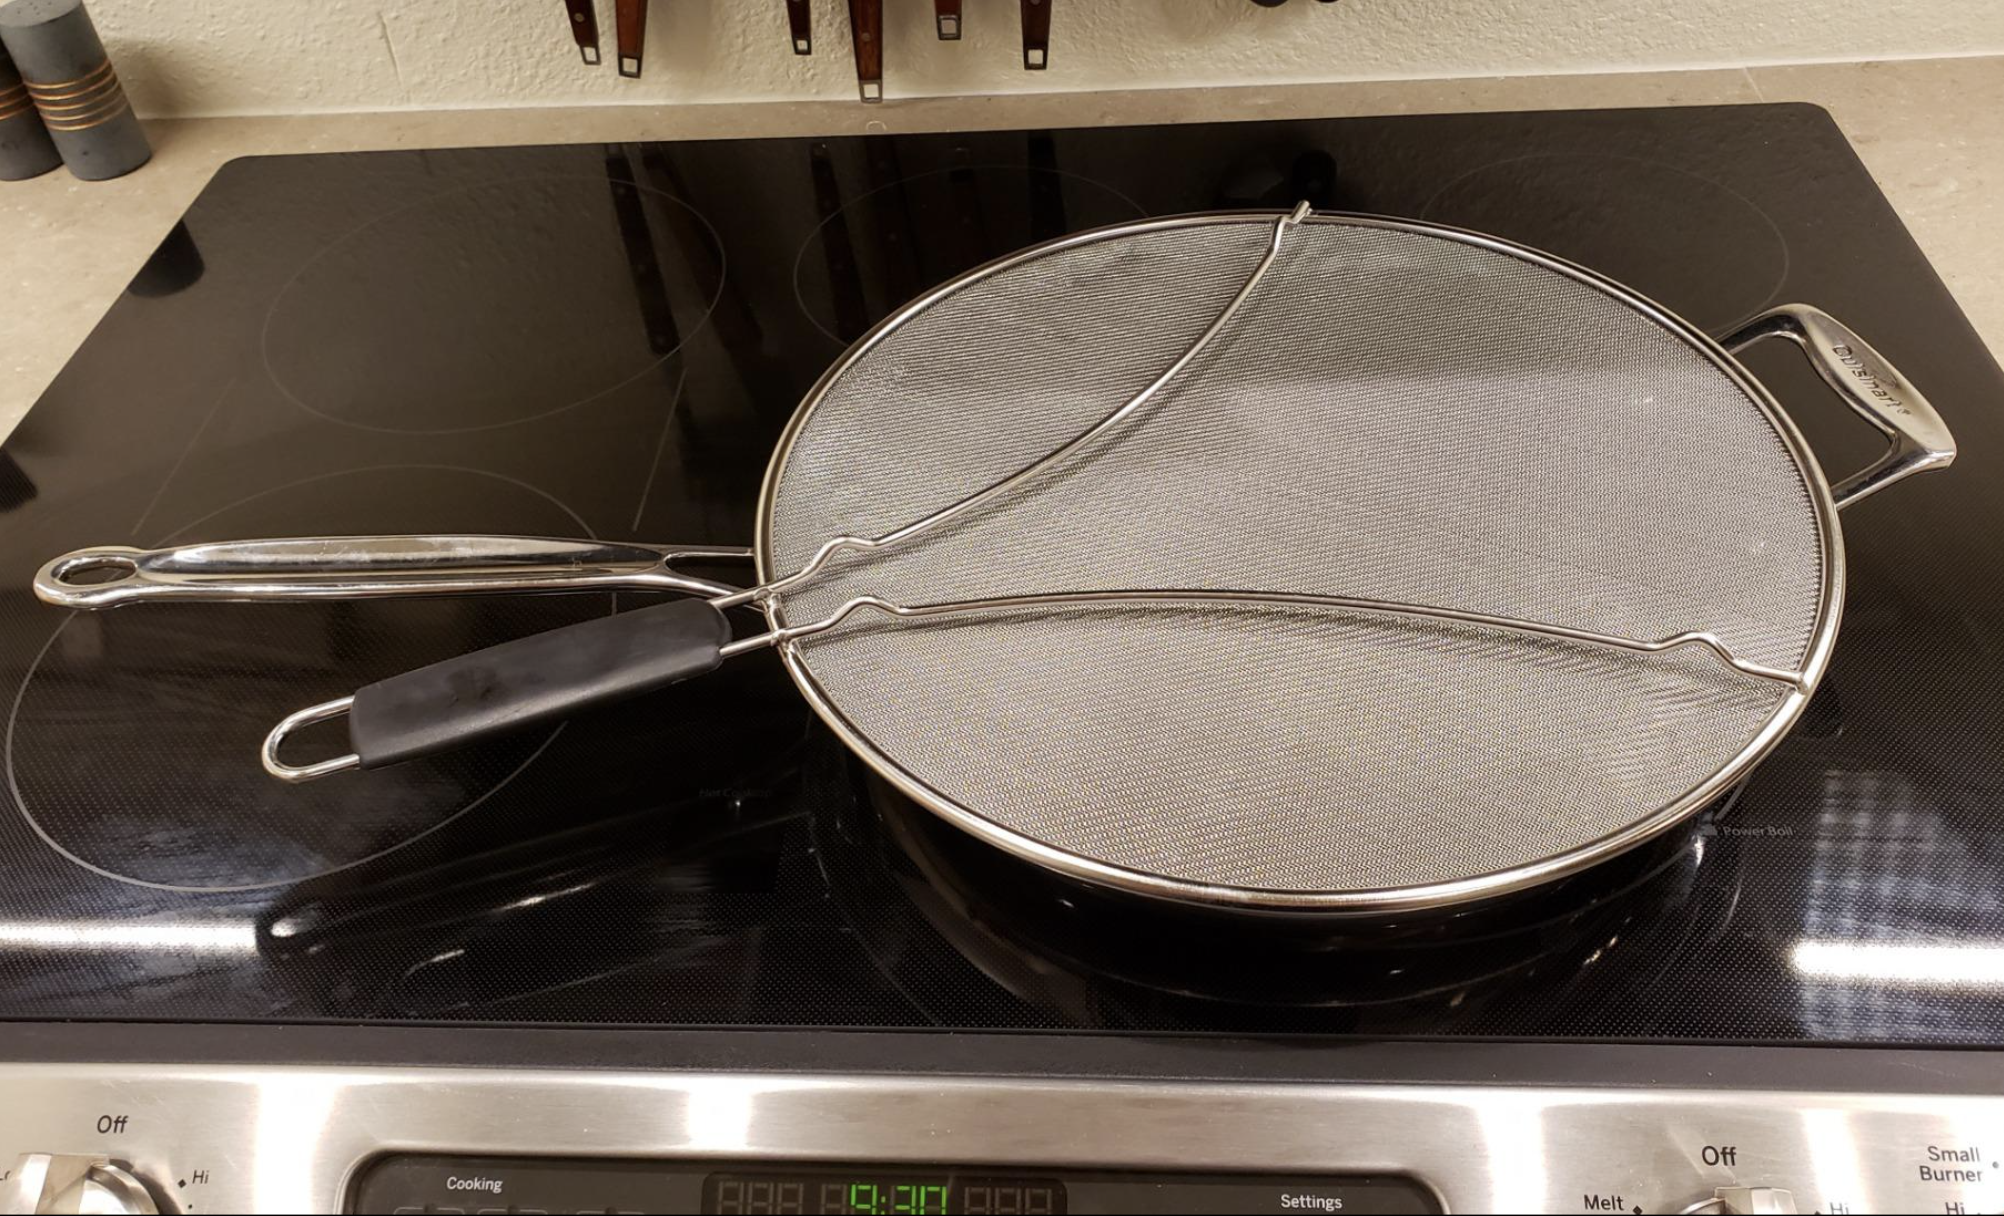 A reviewer photo of a stainless steel splatter guard sitting on top of a pan on a stove